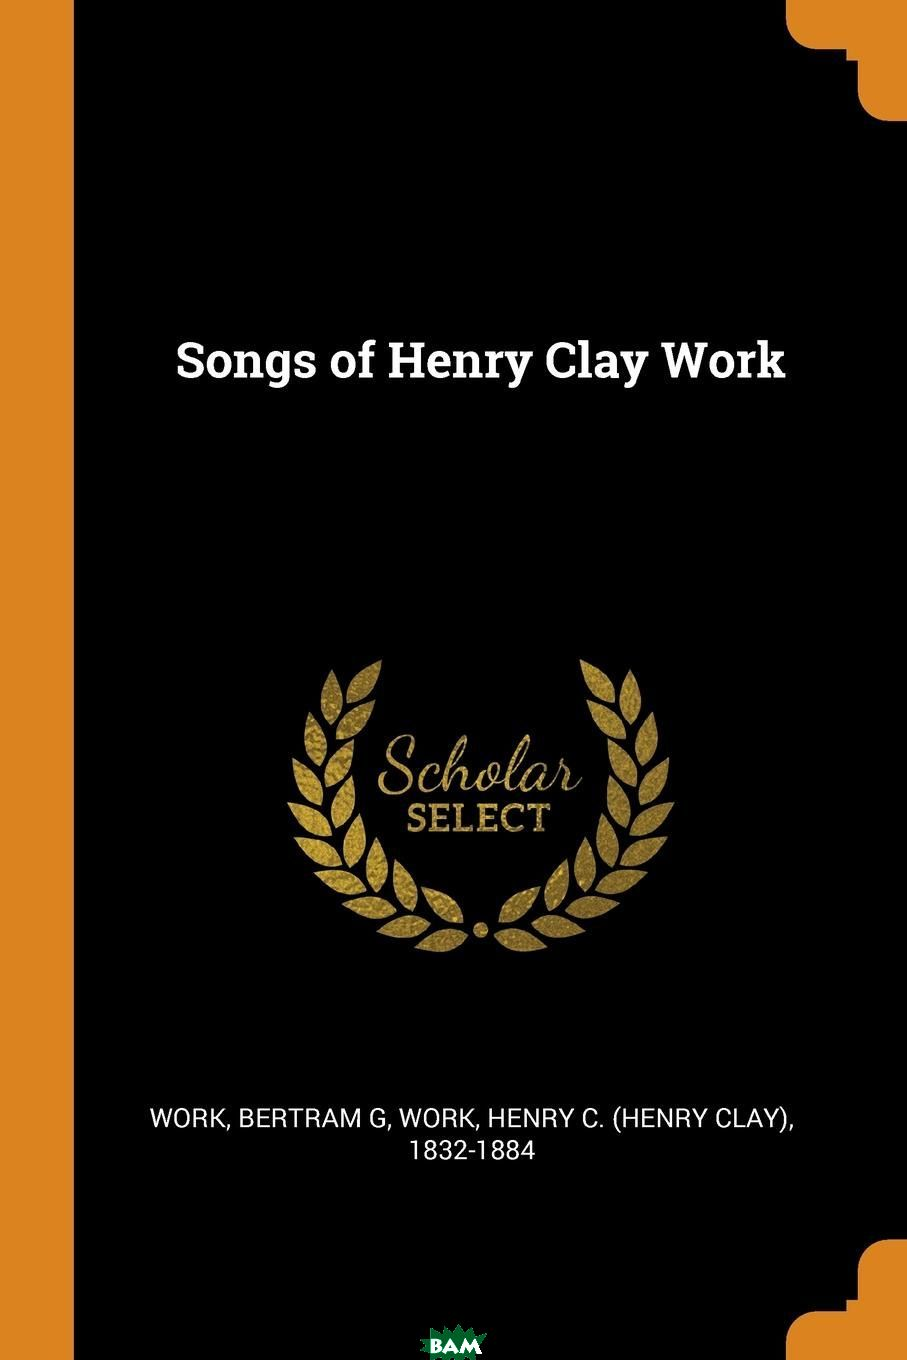 Songs of Henry Clay Work, Bertram G Work, Henry C. 1832-1884 Work, 9780353291089  - купить со скидкой